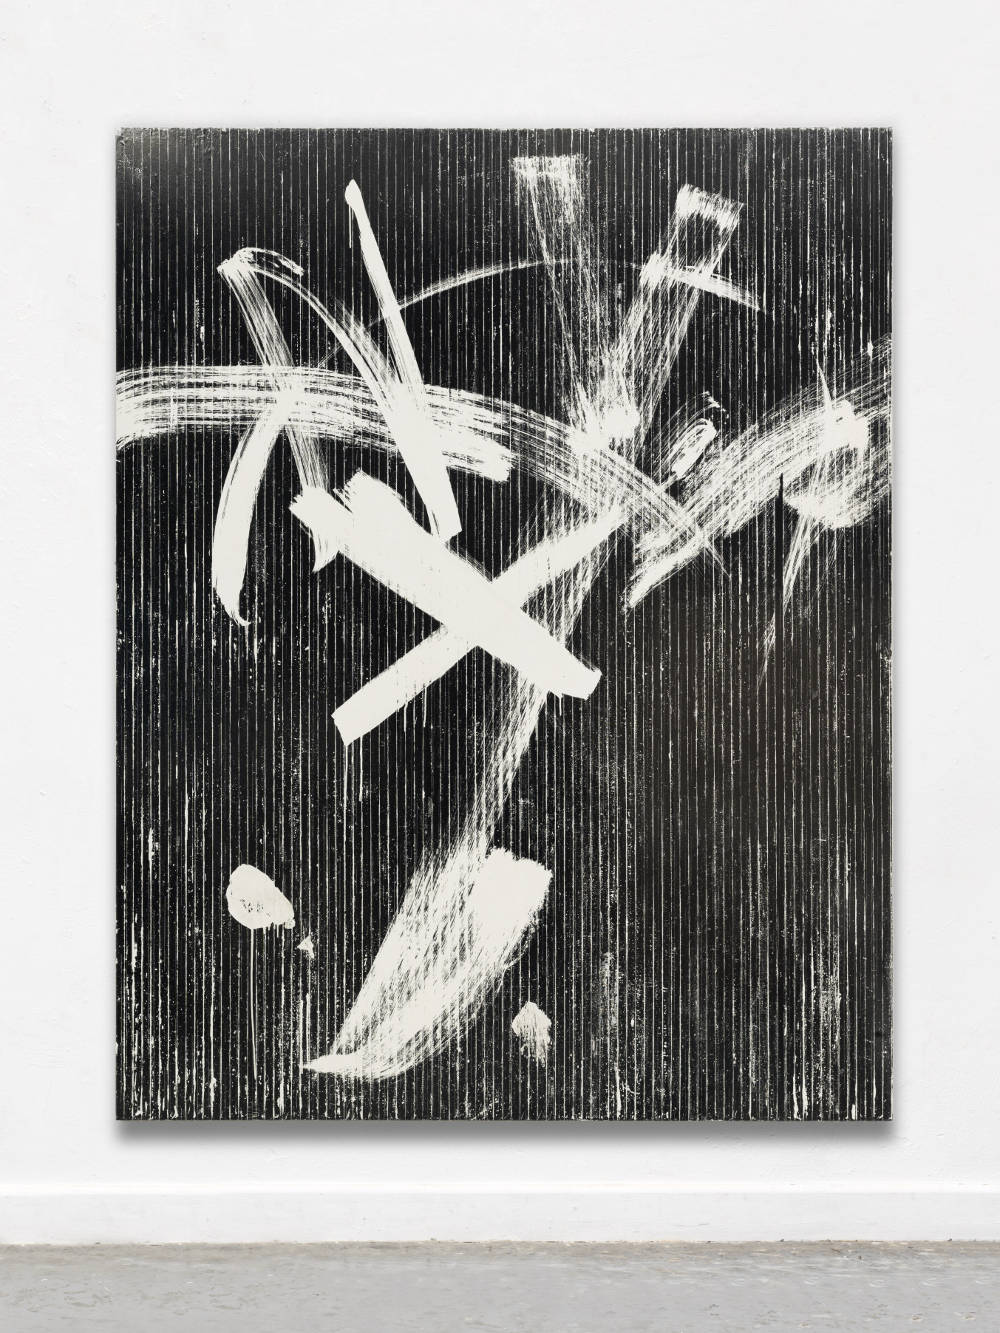 Gregor Hildebrandt, weiße Bewegungn (zu PAAR), 2018. Magnetic VHS coating, adhesive tape and acrylic on canvas 229 x 179 cm,  90.3 x 70.5 in. Courtesy of the artist and Perrotin.